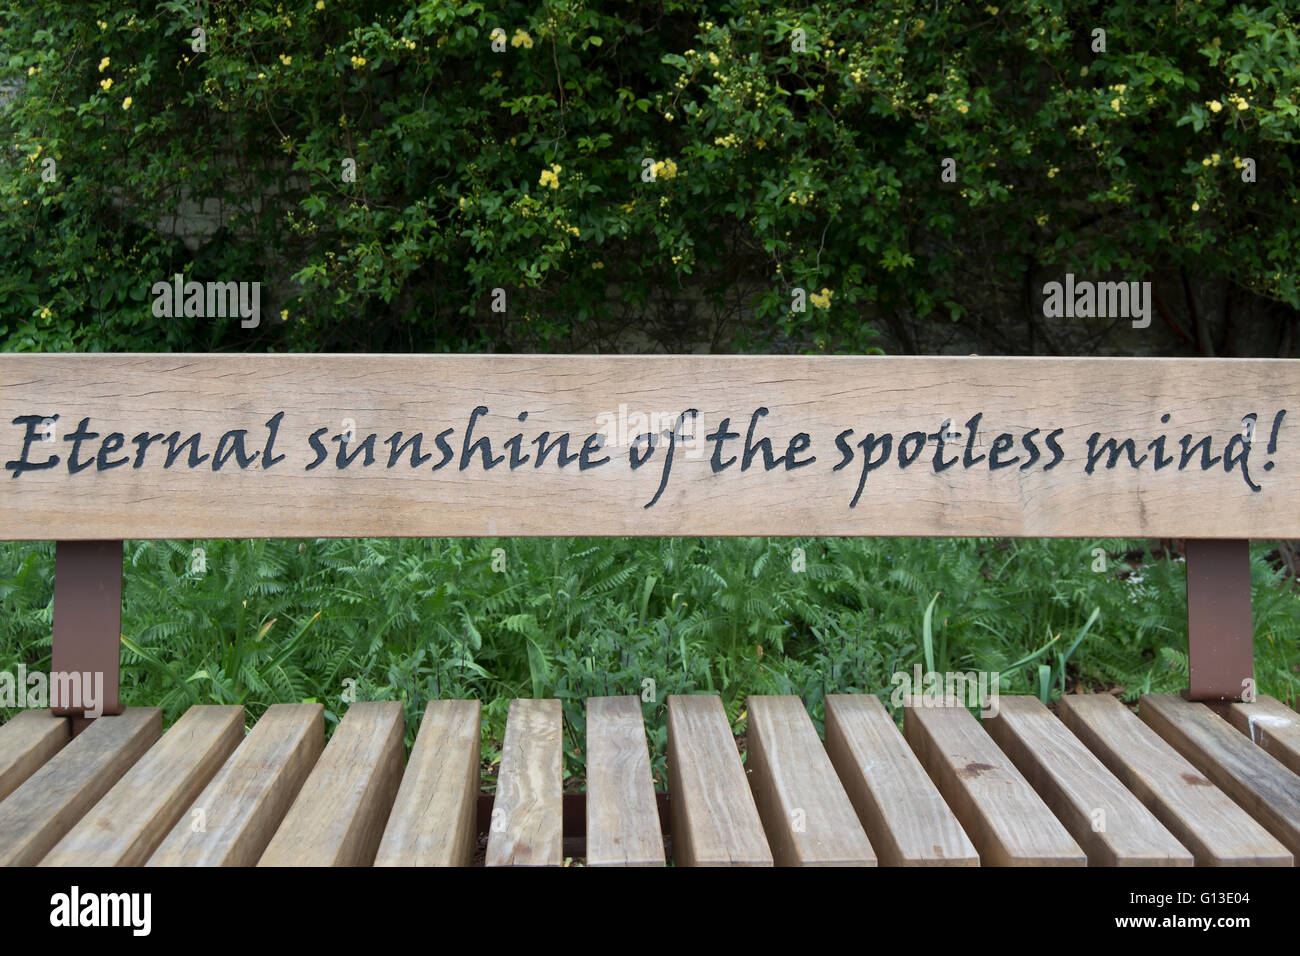 an alexander pope quote, from the poem eloisa to abelard, on a bench in twickenham, middlesex, england Stock Photo